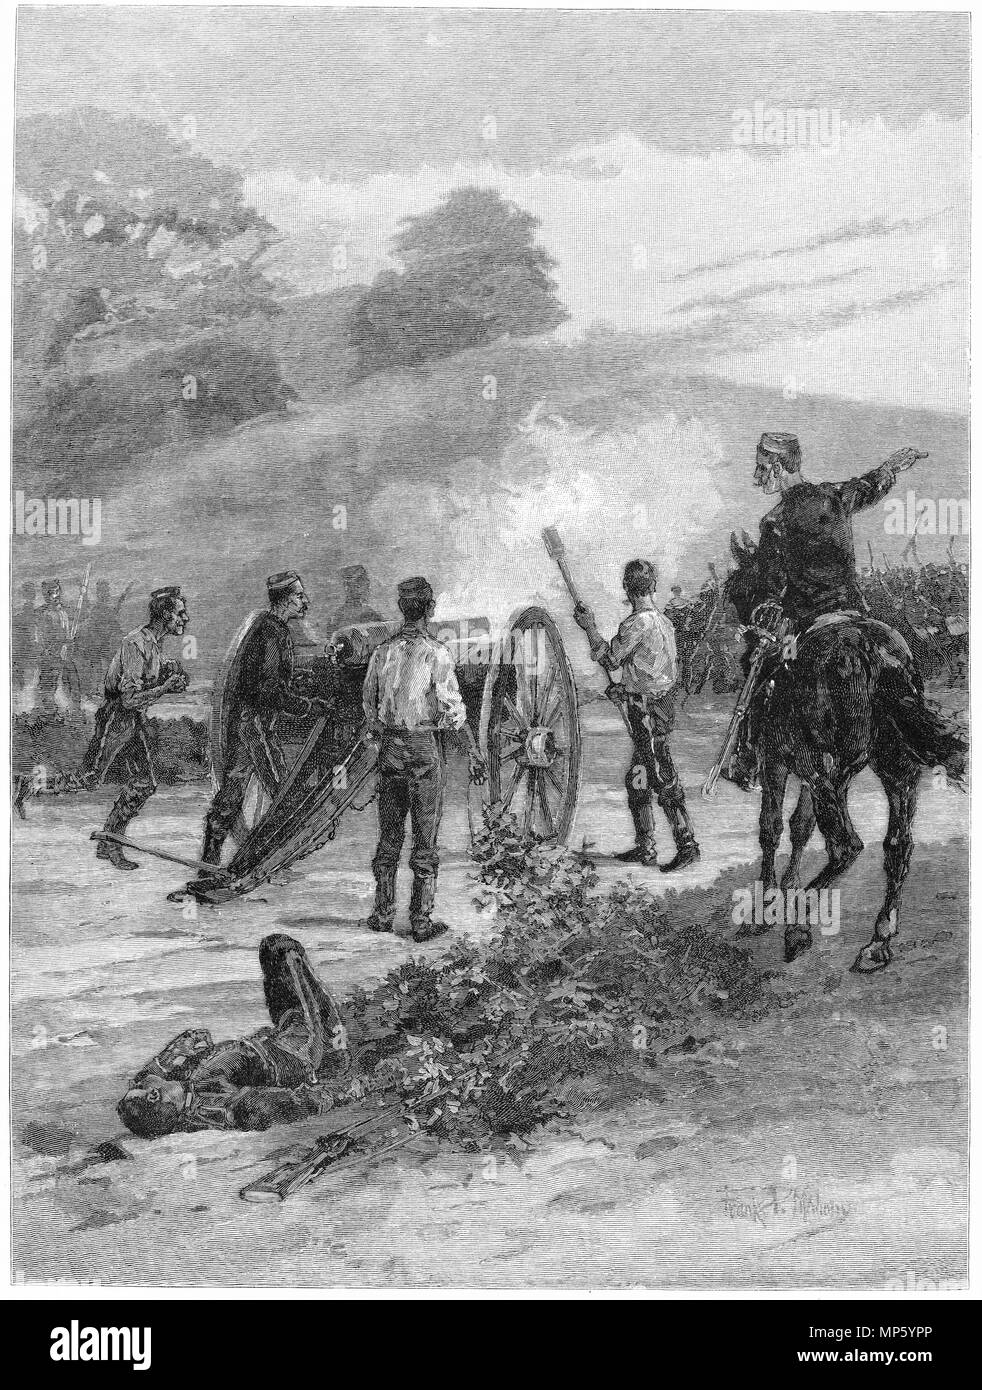 Engraving of the Seige of Pukerangiora during the Maori Land Wars, New Zealand. From the Picturesque Atlas of Australasia Vol 3, 1886 - Stock Image